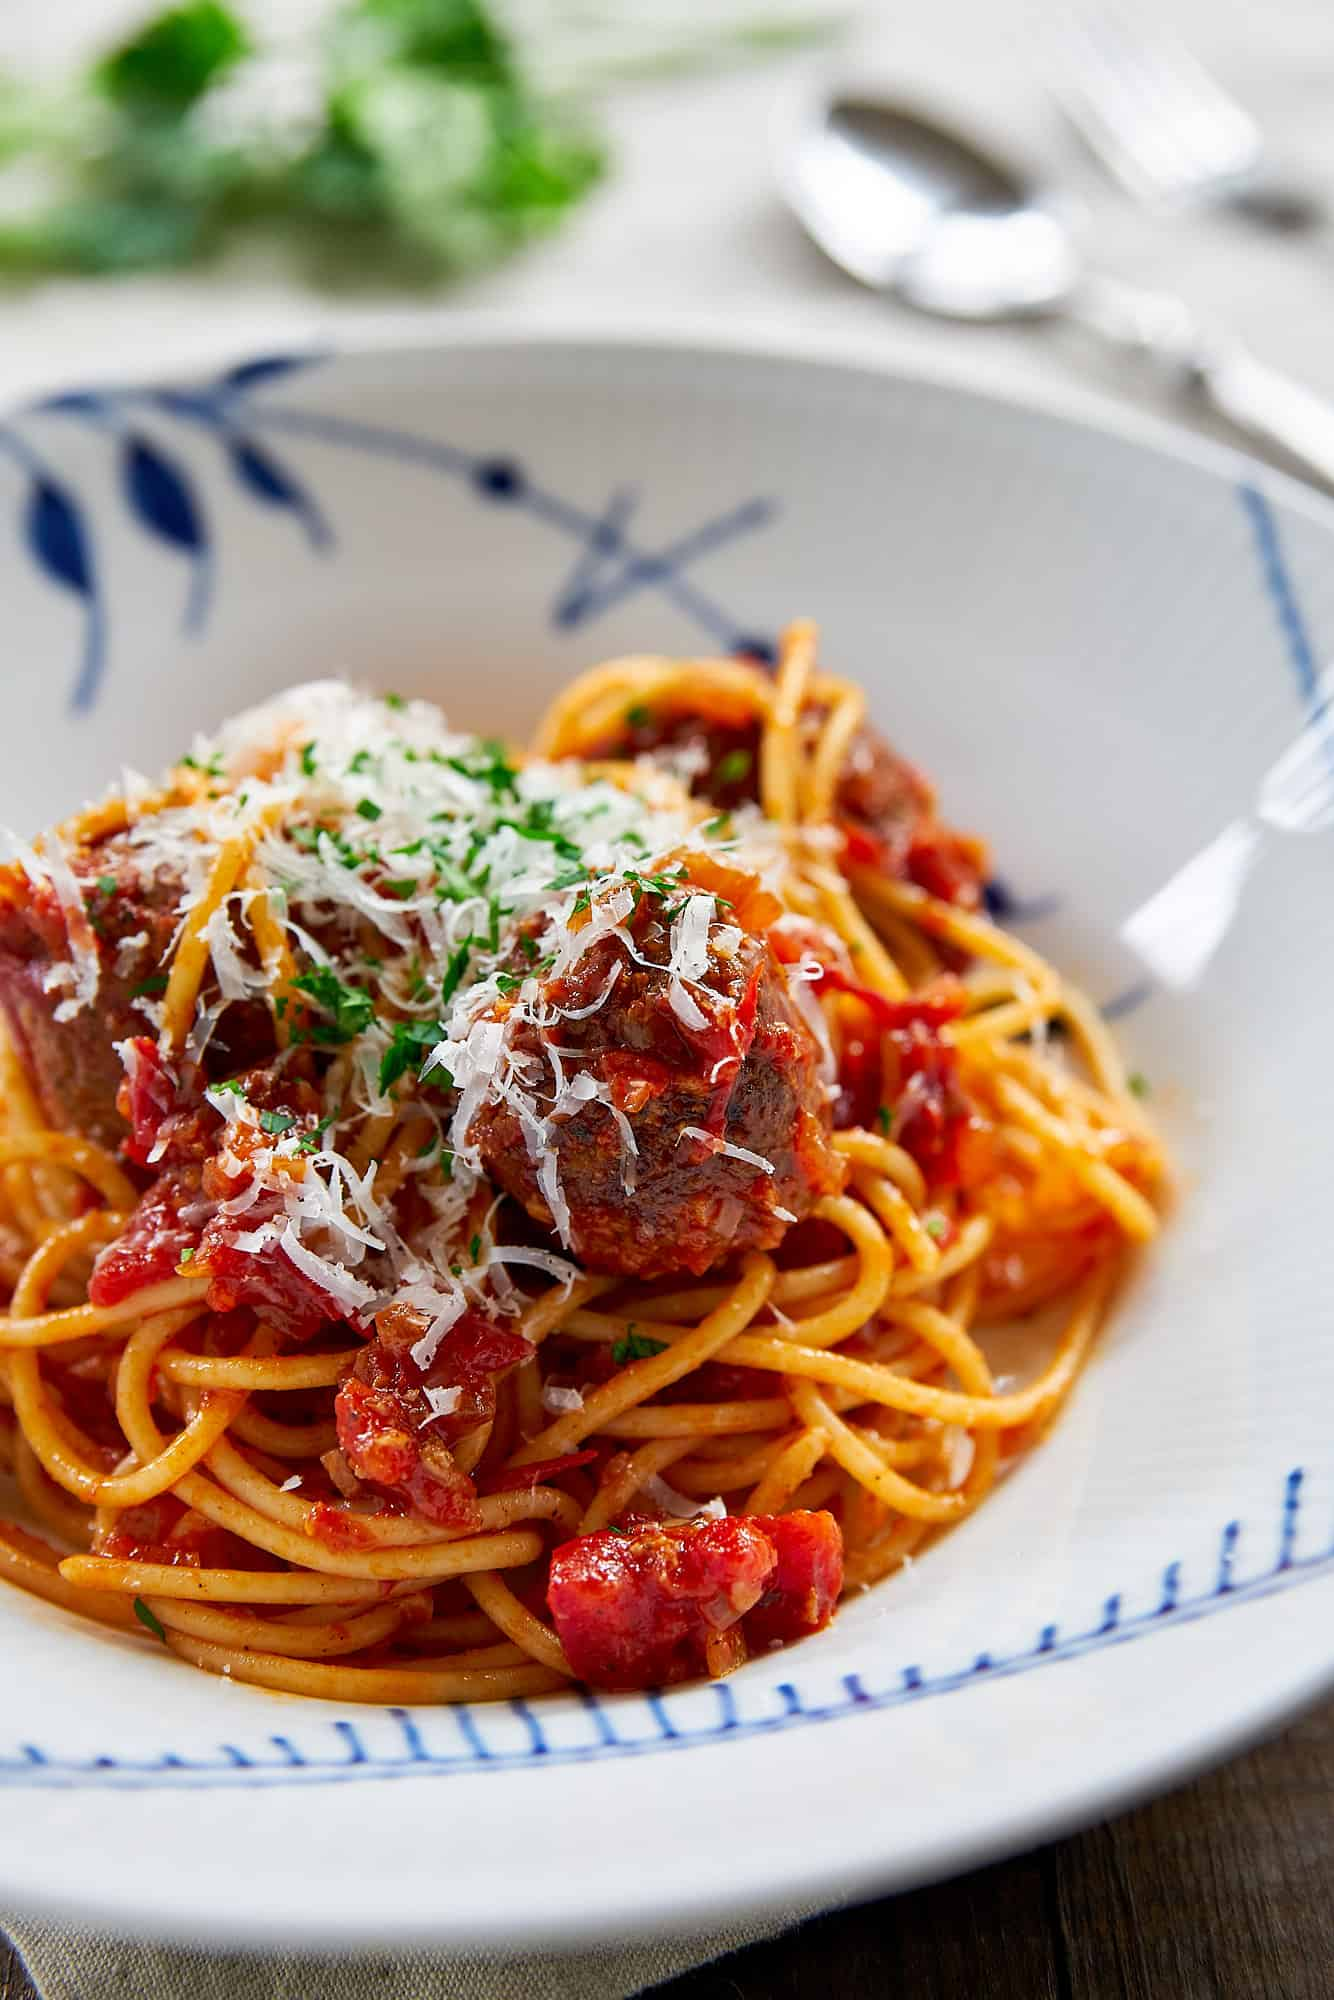 The ultimate guide to making the best Spaghetti and Meatballs, includes tips on the meat, aromatics, seasonings, fillers, and cooking techniqes to make the juciest, most tender, and flavorful meatballs.